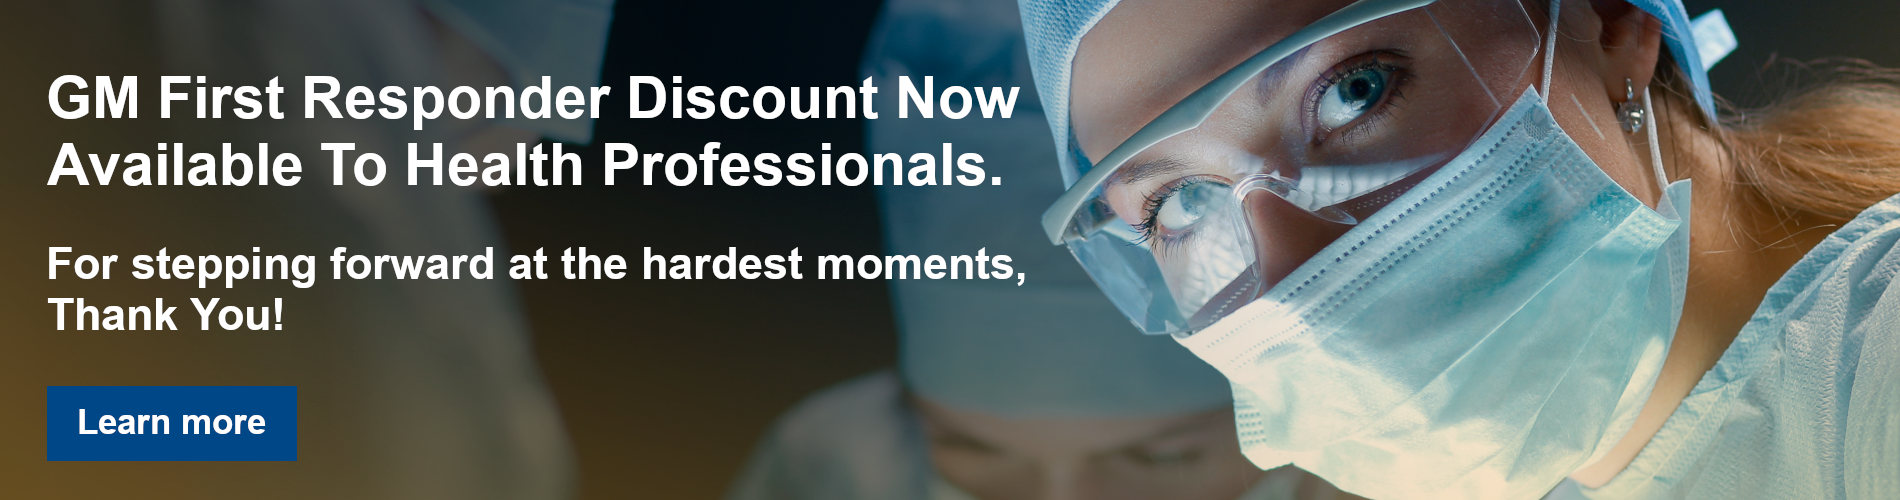 First Responder Discount for Healthcare Professionals